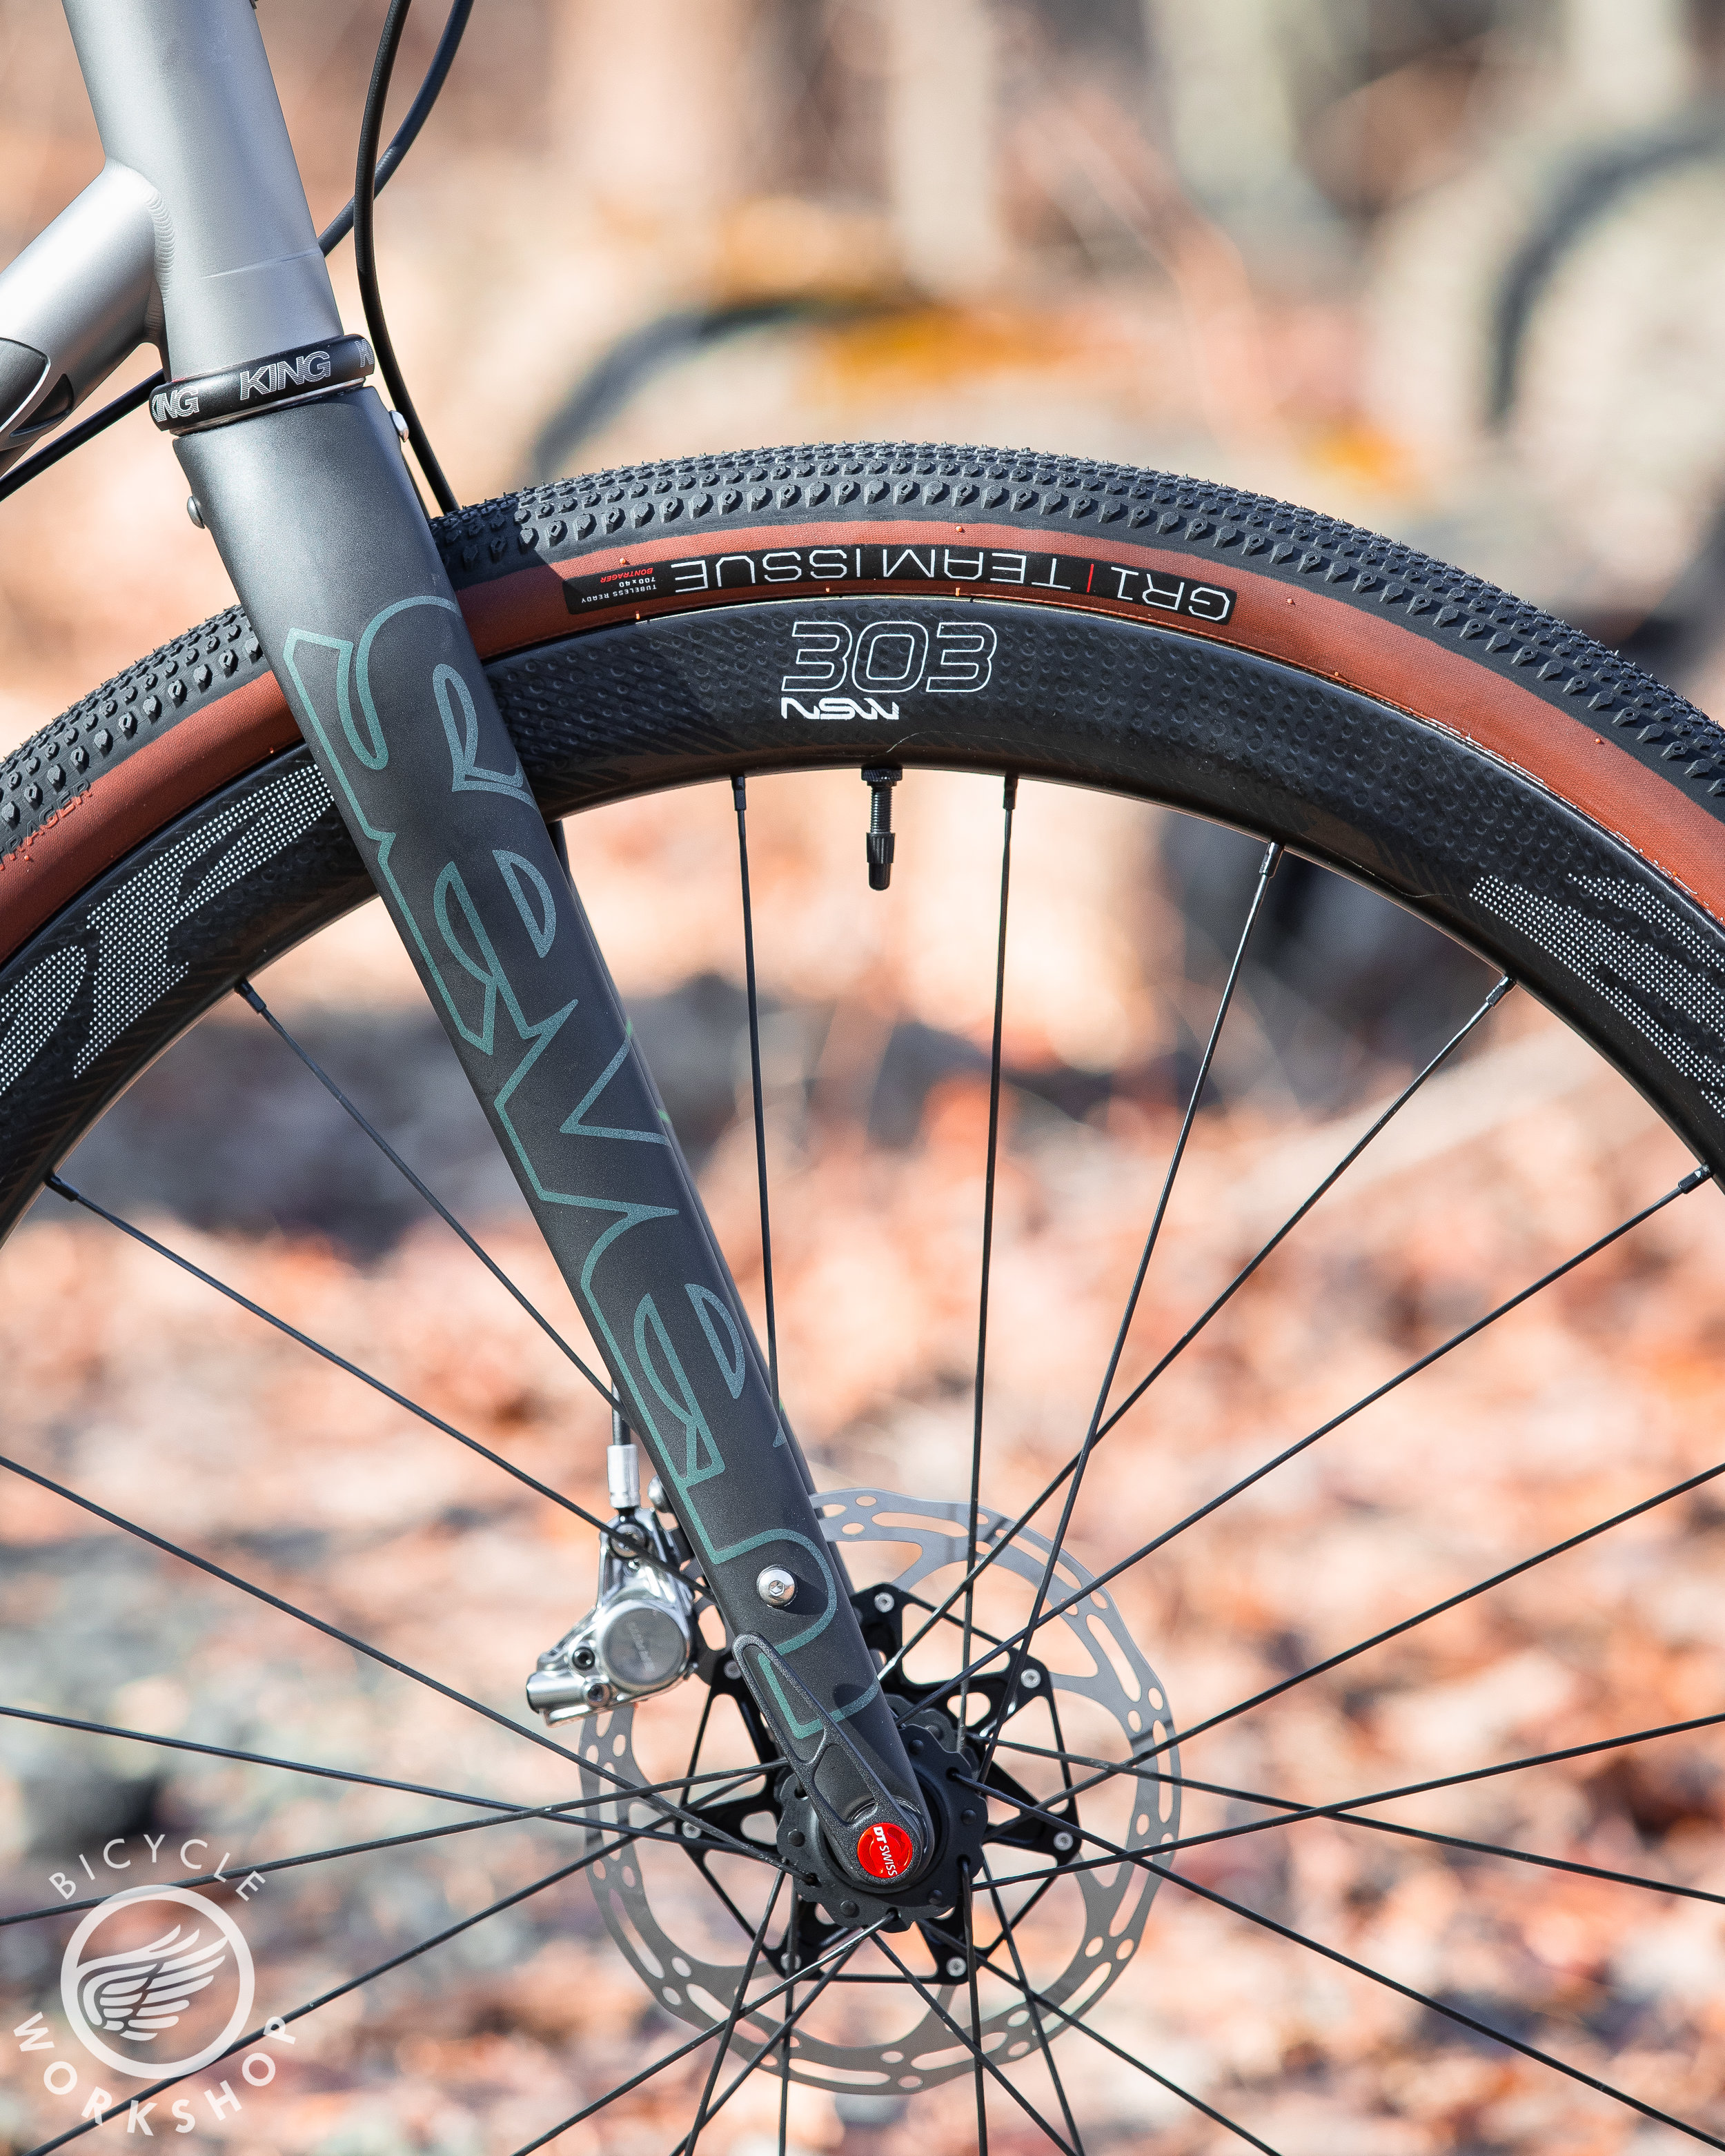 Zipp 303 NSW wheels with Bontrager GR1 tires